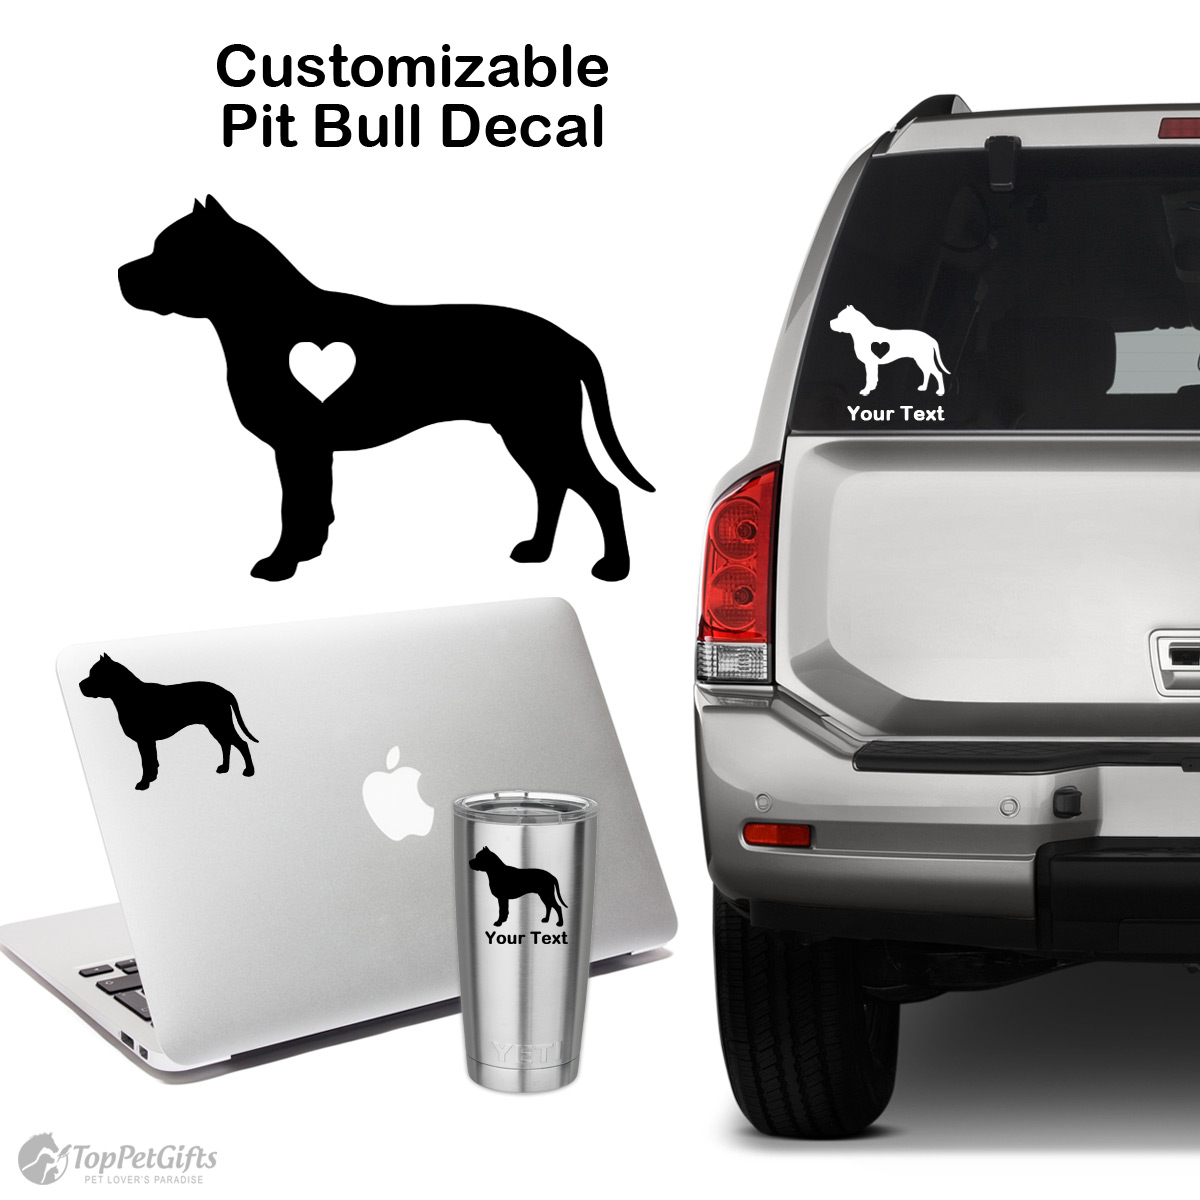 Personalized Pit Bull Decal